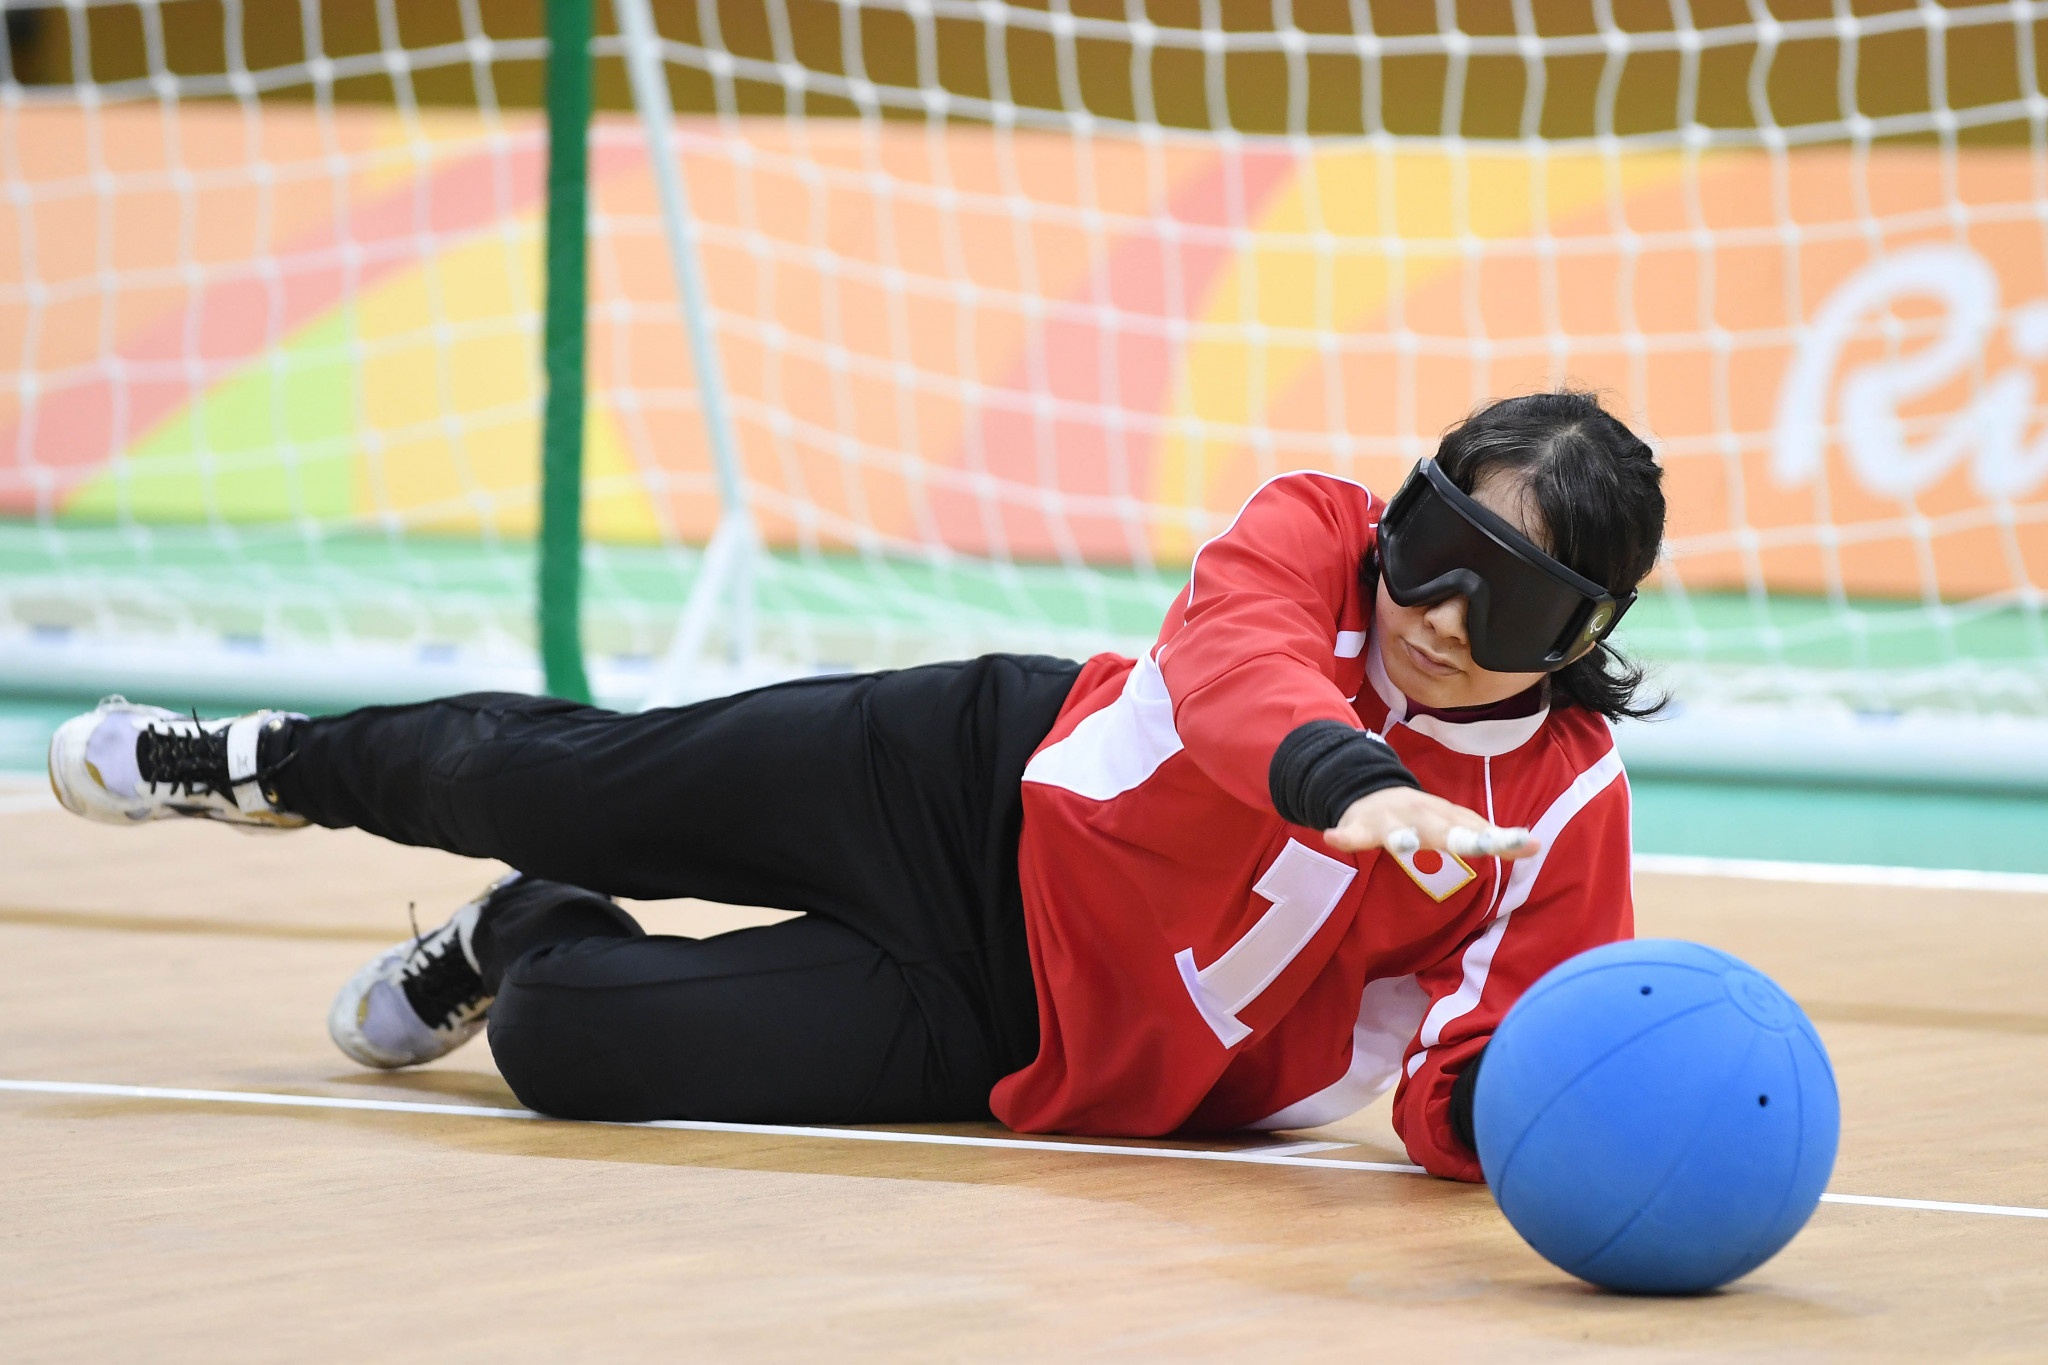 The rule extension followed the postponement of the Tokyo 2020 Paralympic Games to 2021 ©Getty Images